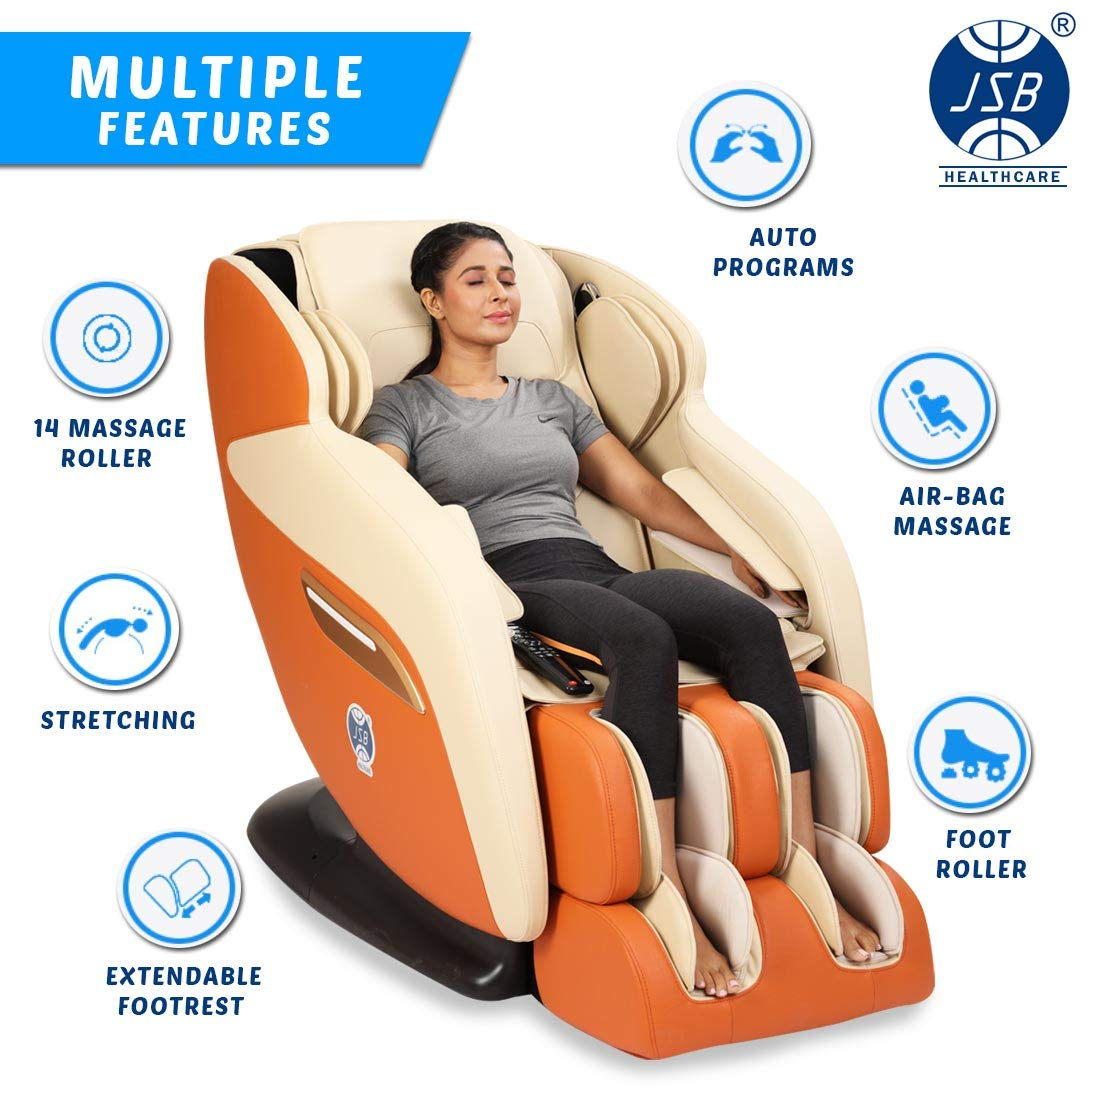 JSB MZ19 Full Body Massage Chair for Home and Office (with 58% 0FF Limited Offer on Amazon) 6